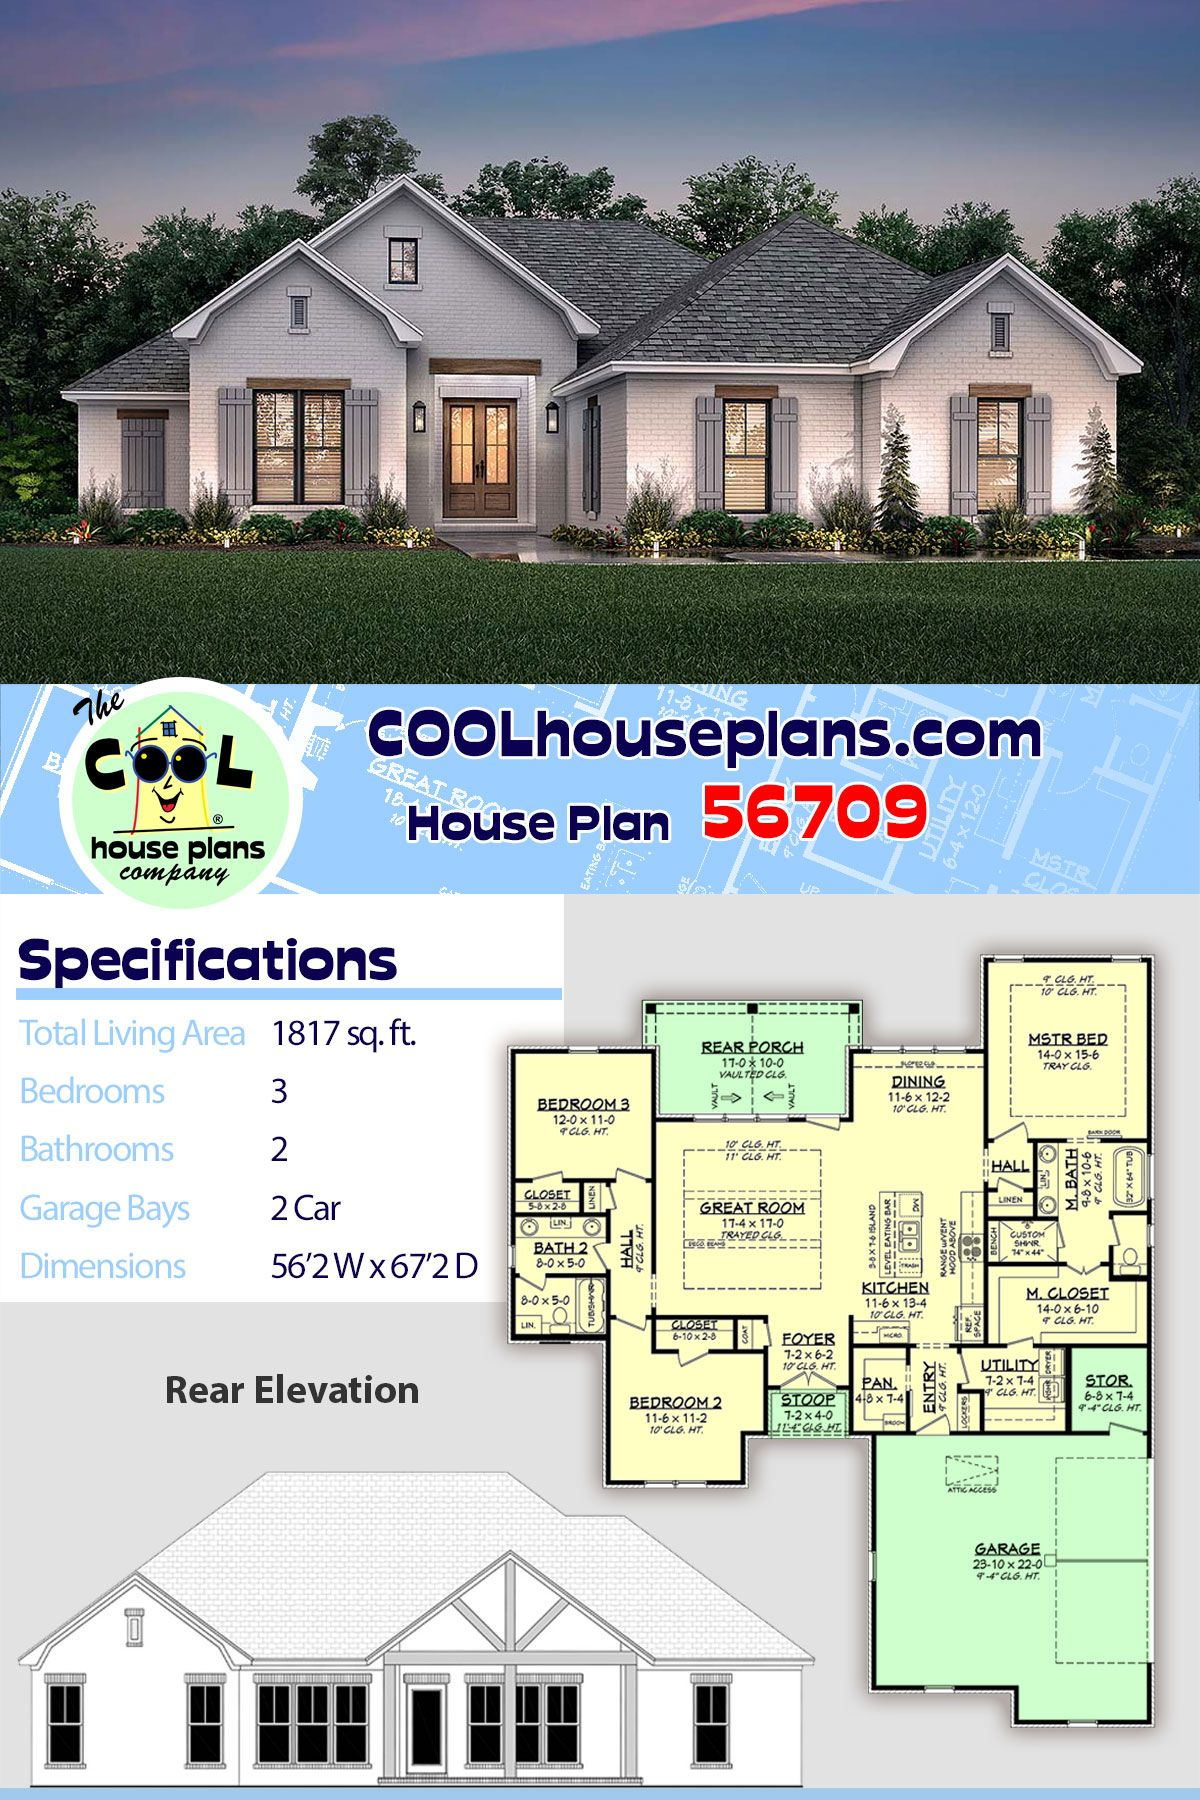 Traditional Style House Plan 56709 With 3 Bed 2 Bath 2 Car Garage House Plans Country House Plans Best House Plans